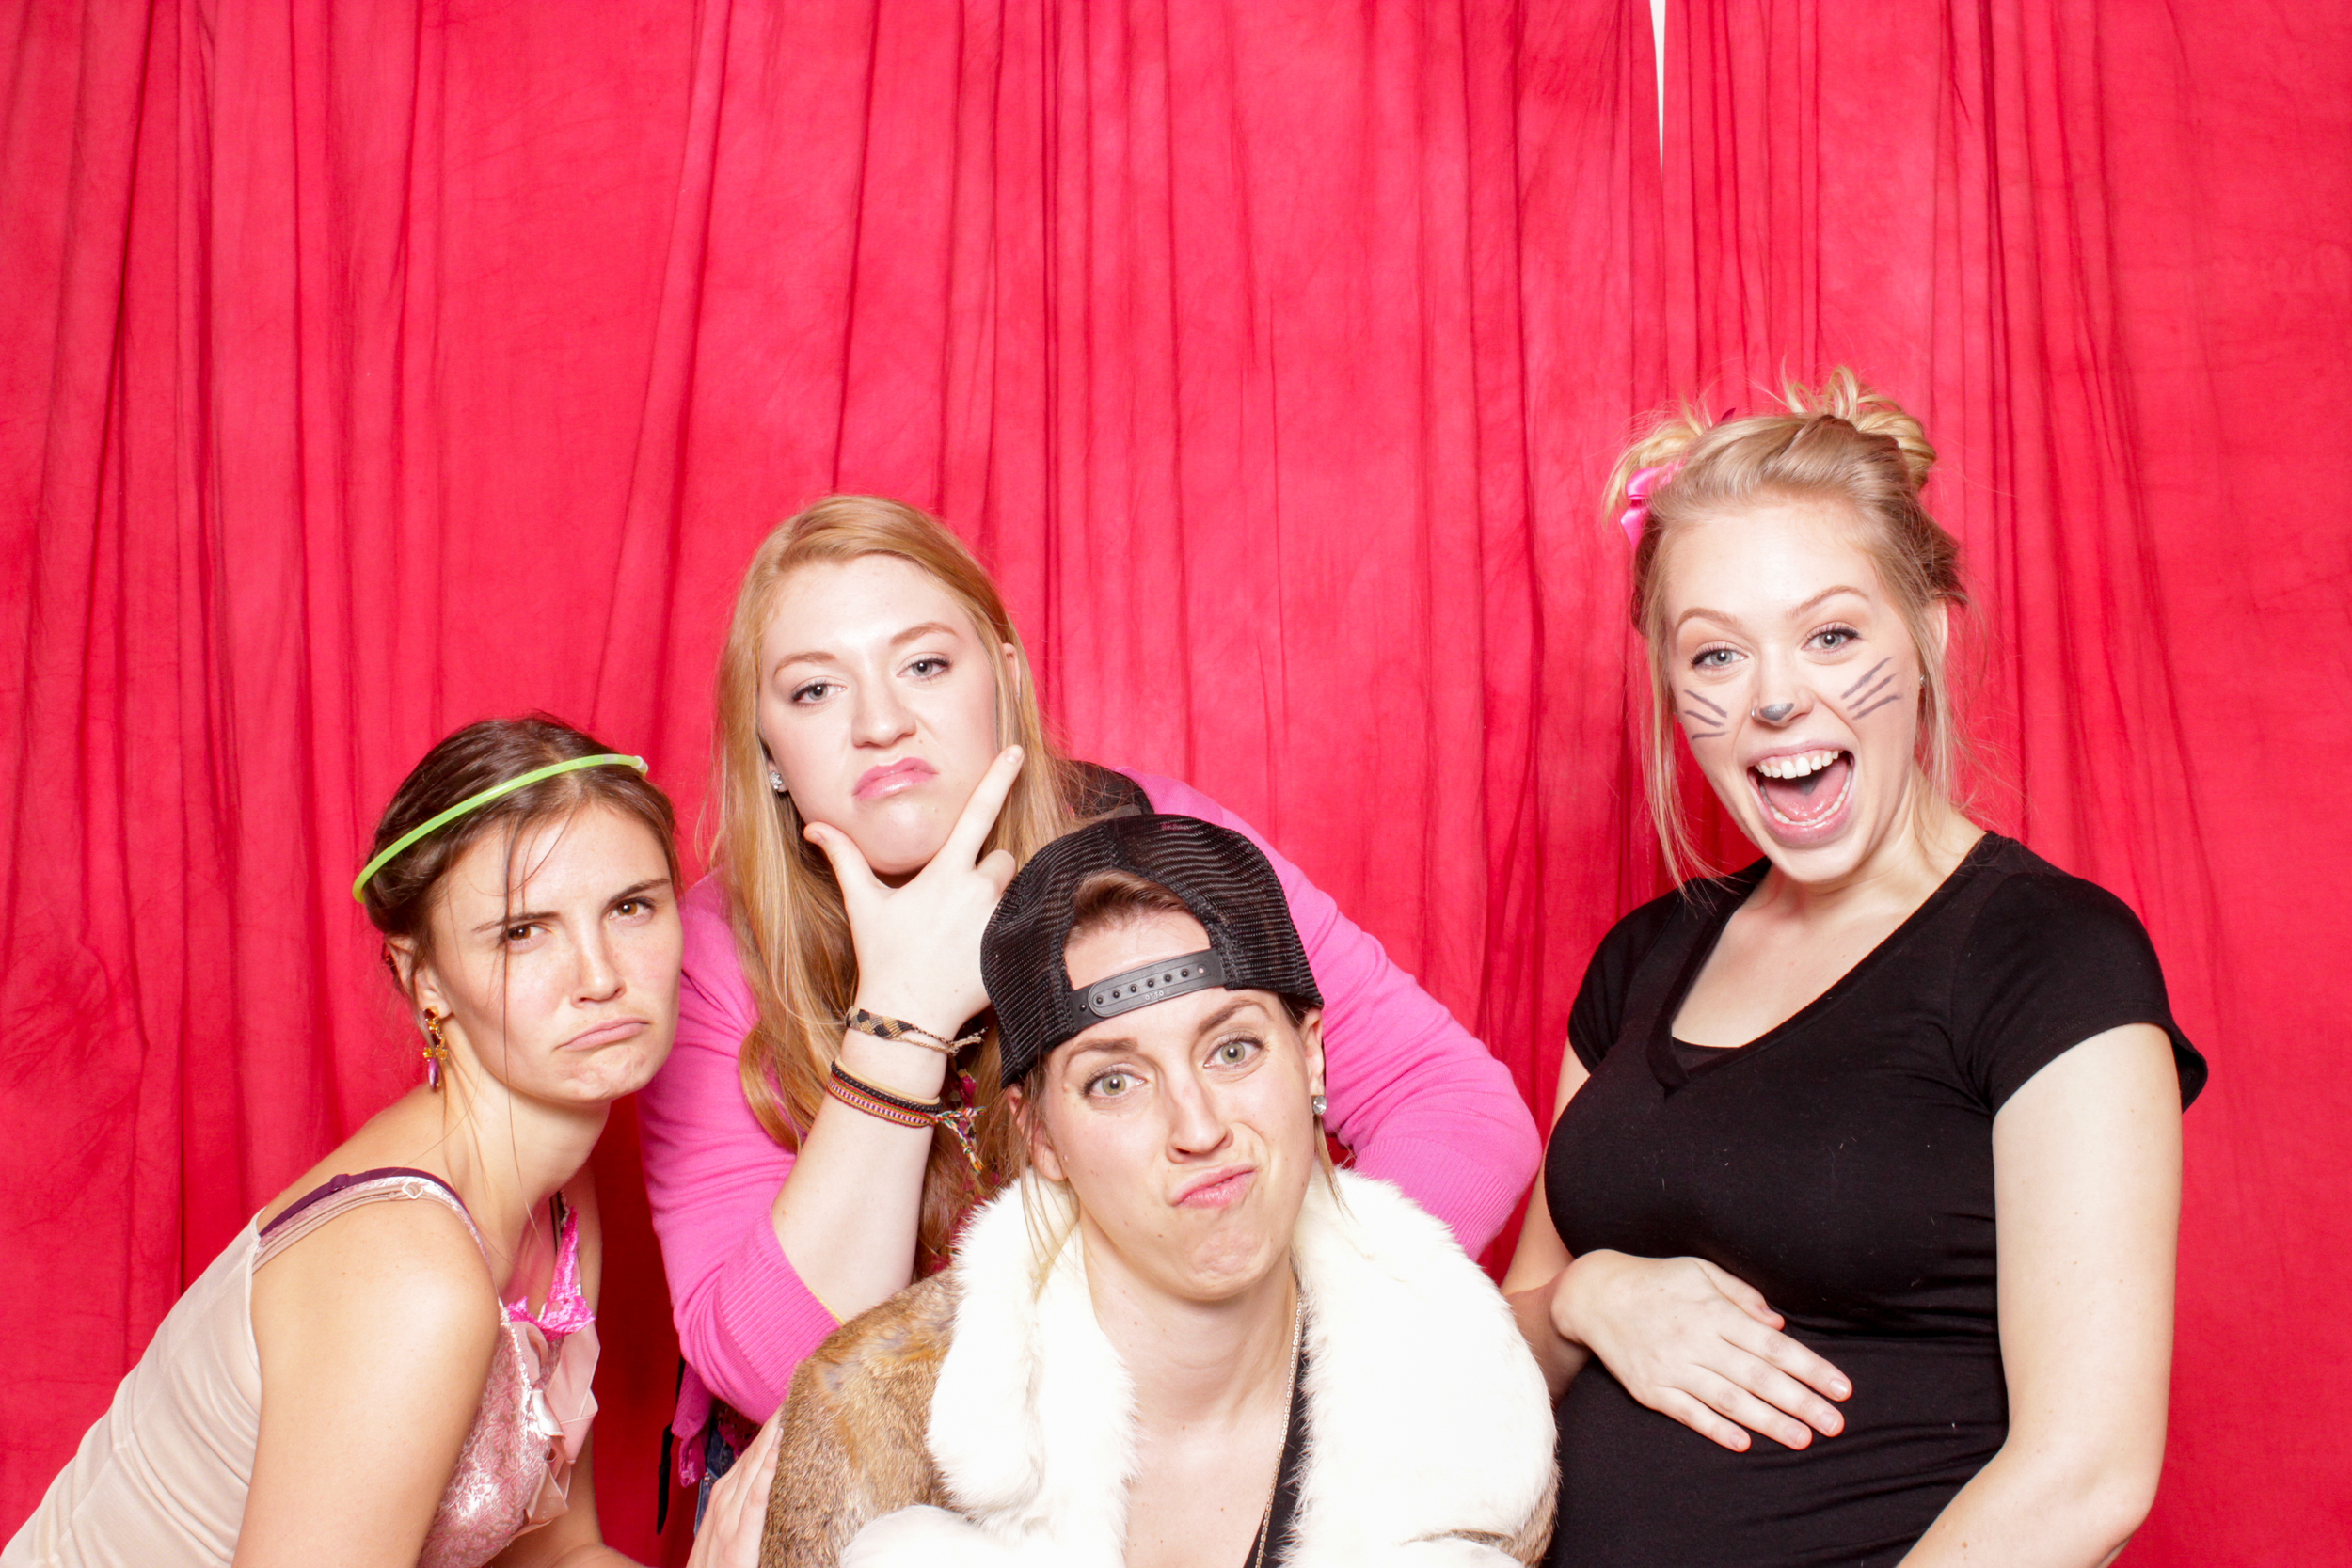 chico-photo-booth-rental-halloween-party-150.jpg